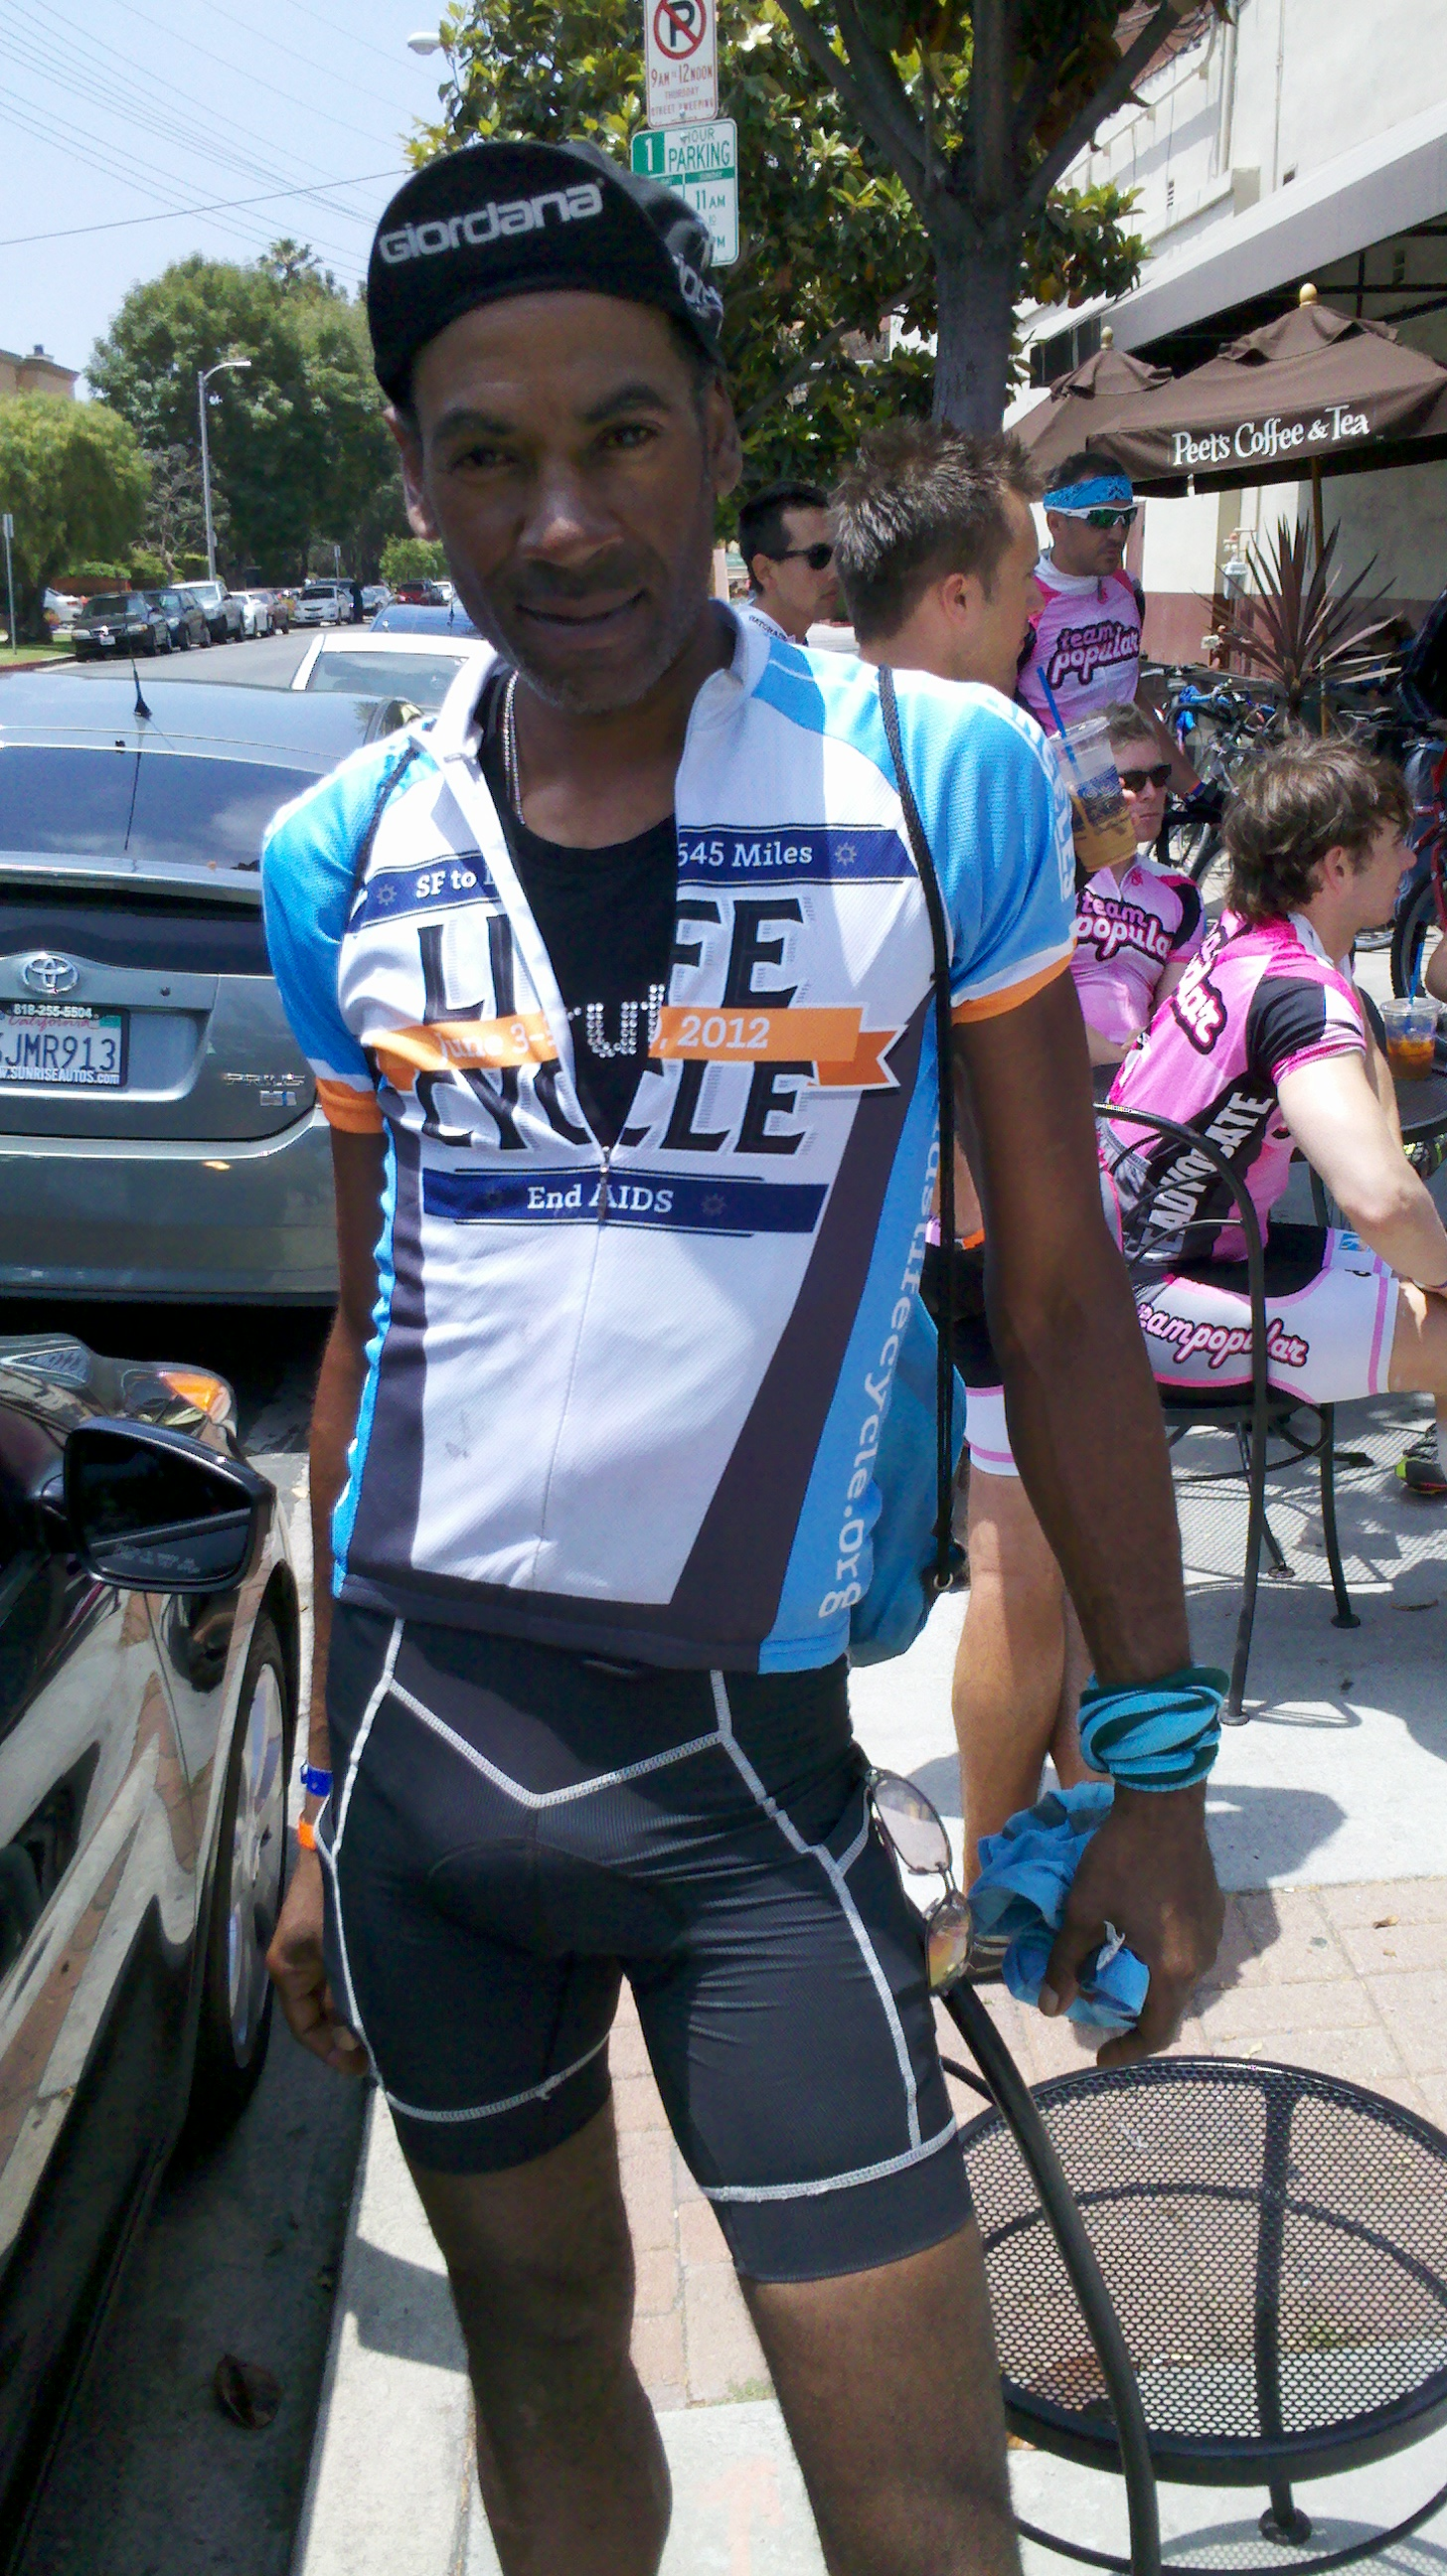 Cyclist wearing Official AIDS/Lifecycle Jersey